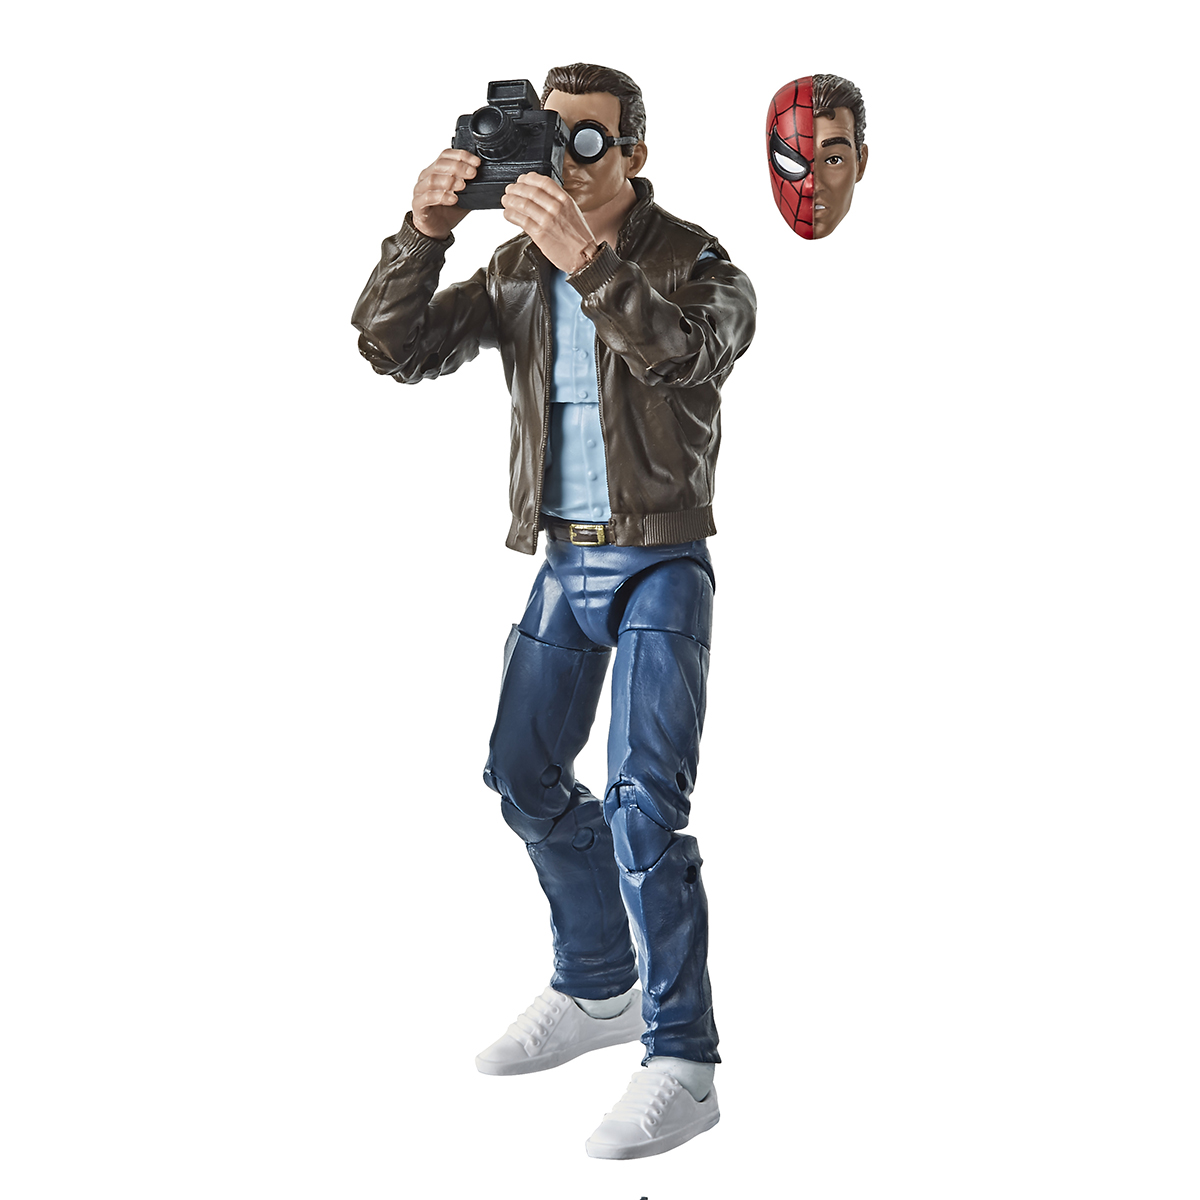 marvel-legends-series-6-inch-peter-parker-retro-collection-figure-oop